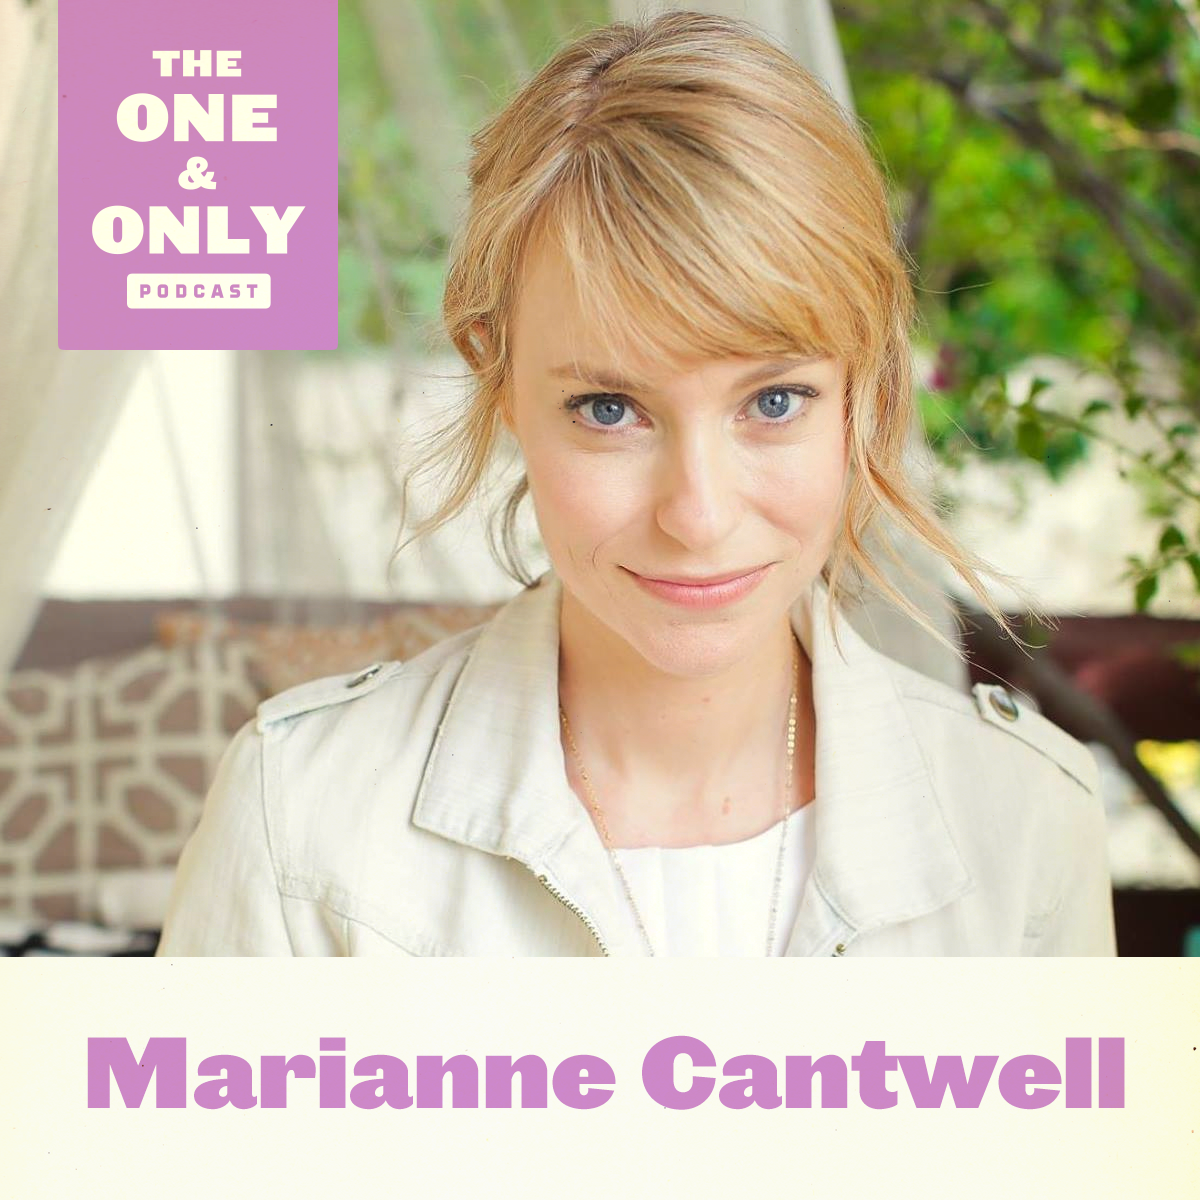 Marianne Cantwell on The One & Only with Mark Shapiro